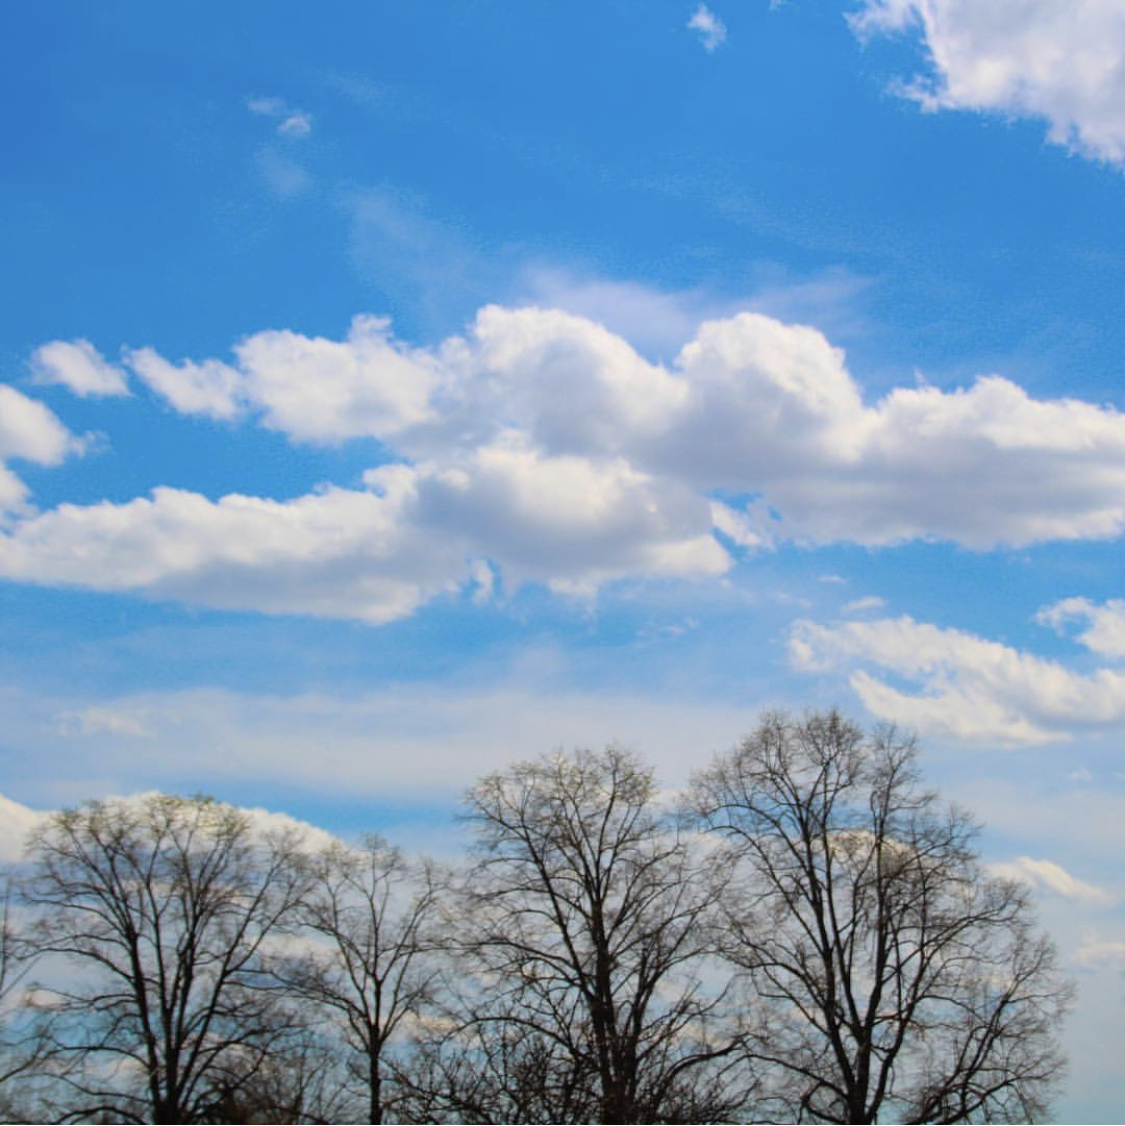 clouds and tress